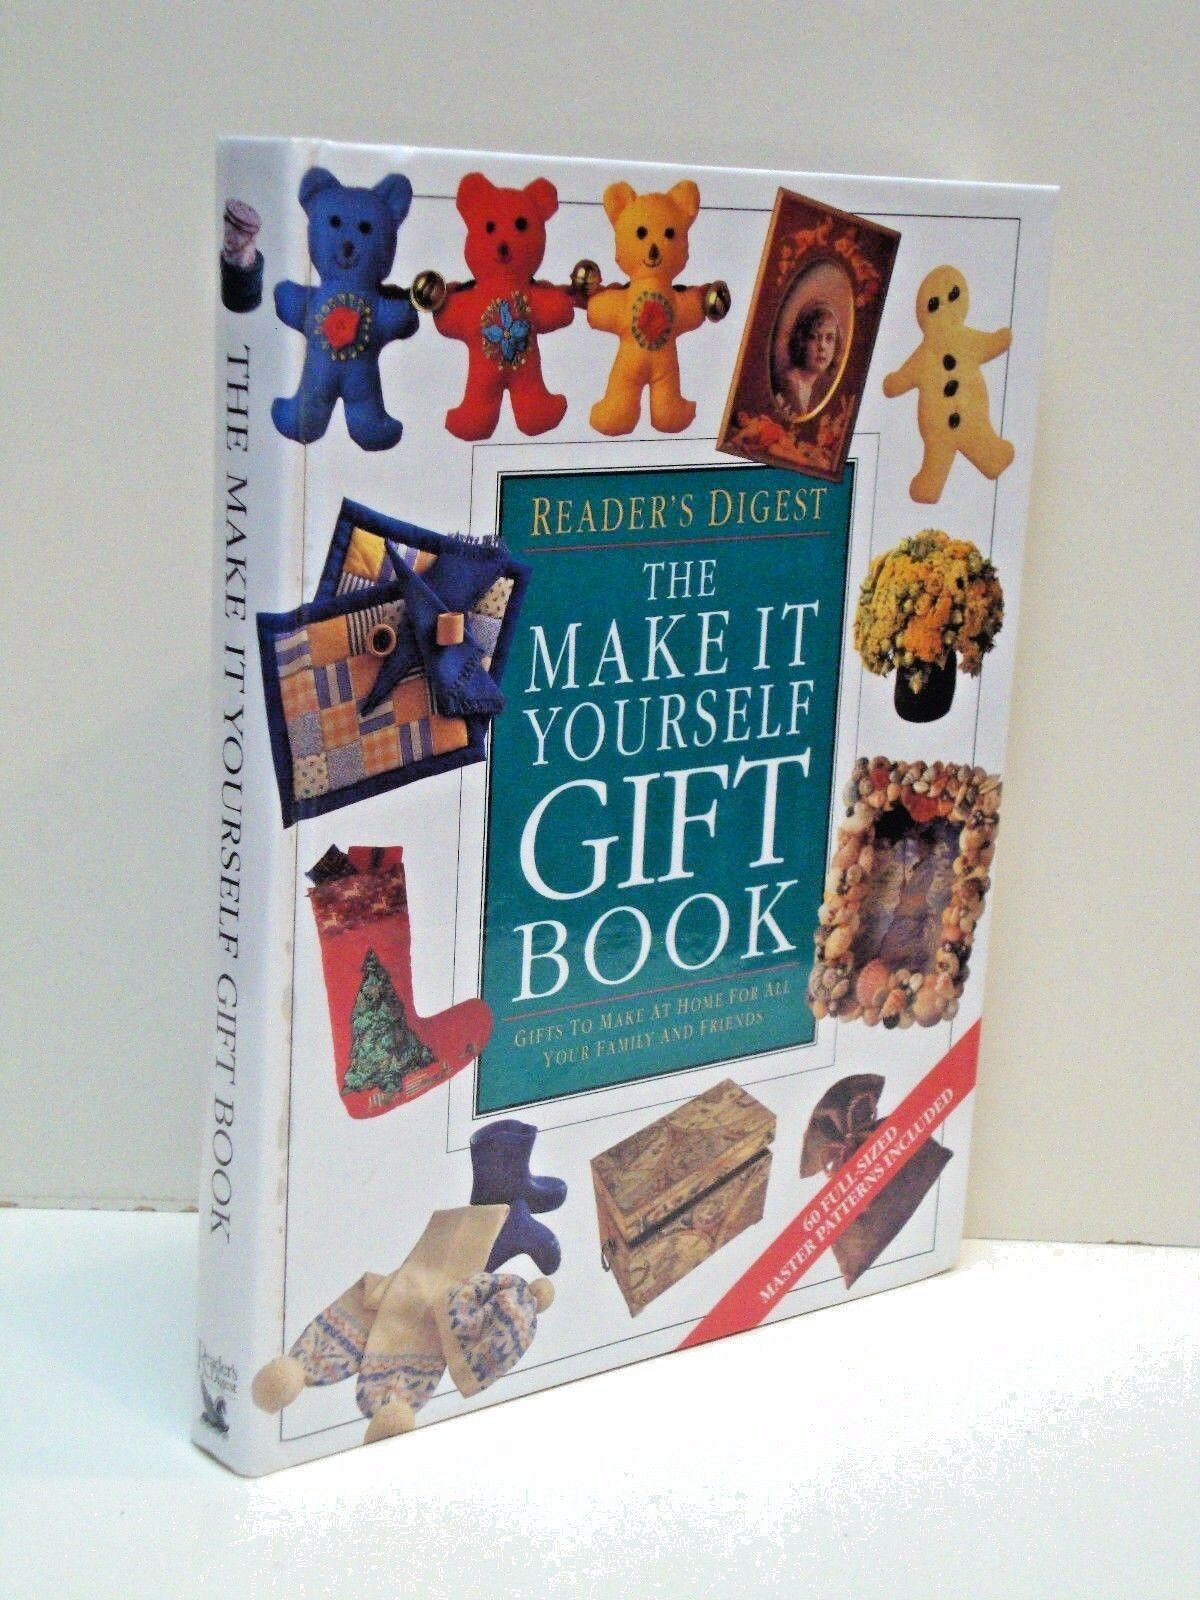 The make it yourself gift book gifts to make at home for all picture 1 of 1 solutioingenieria Gallery